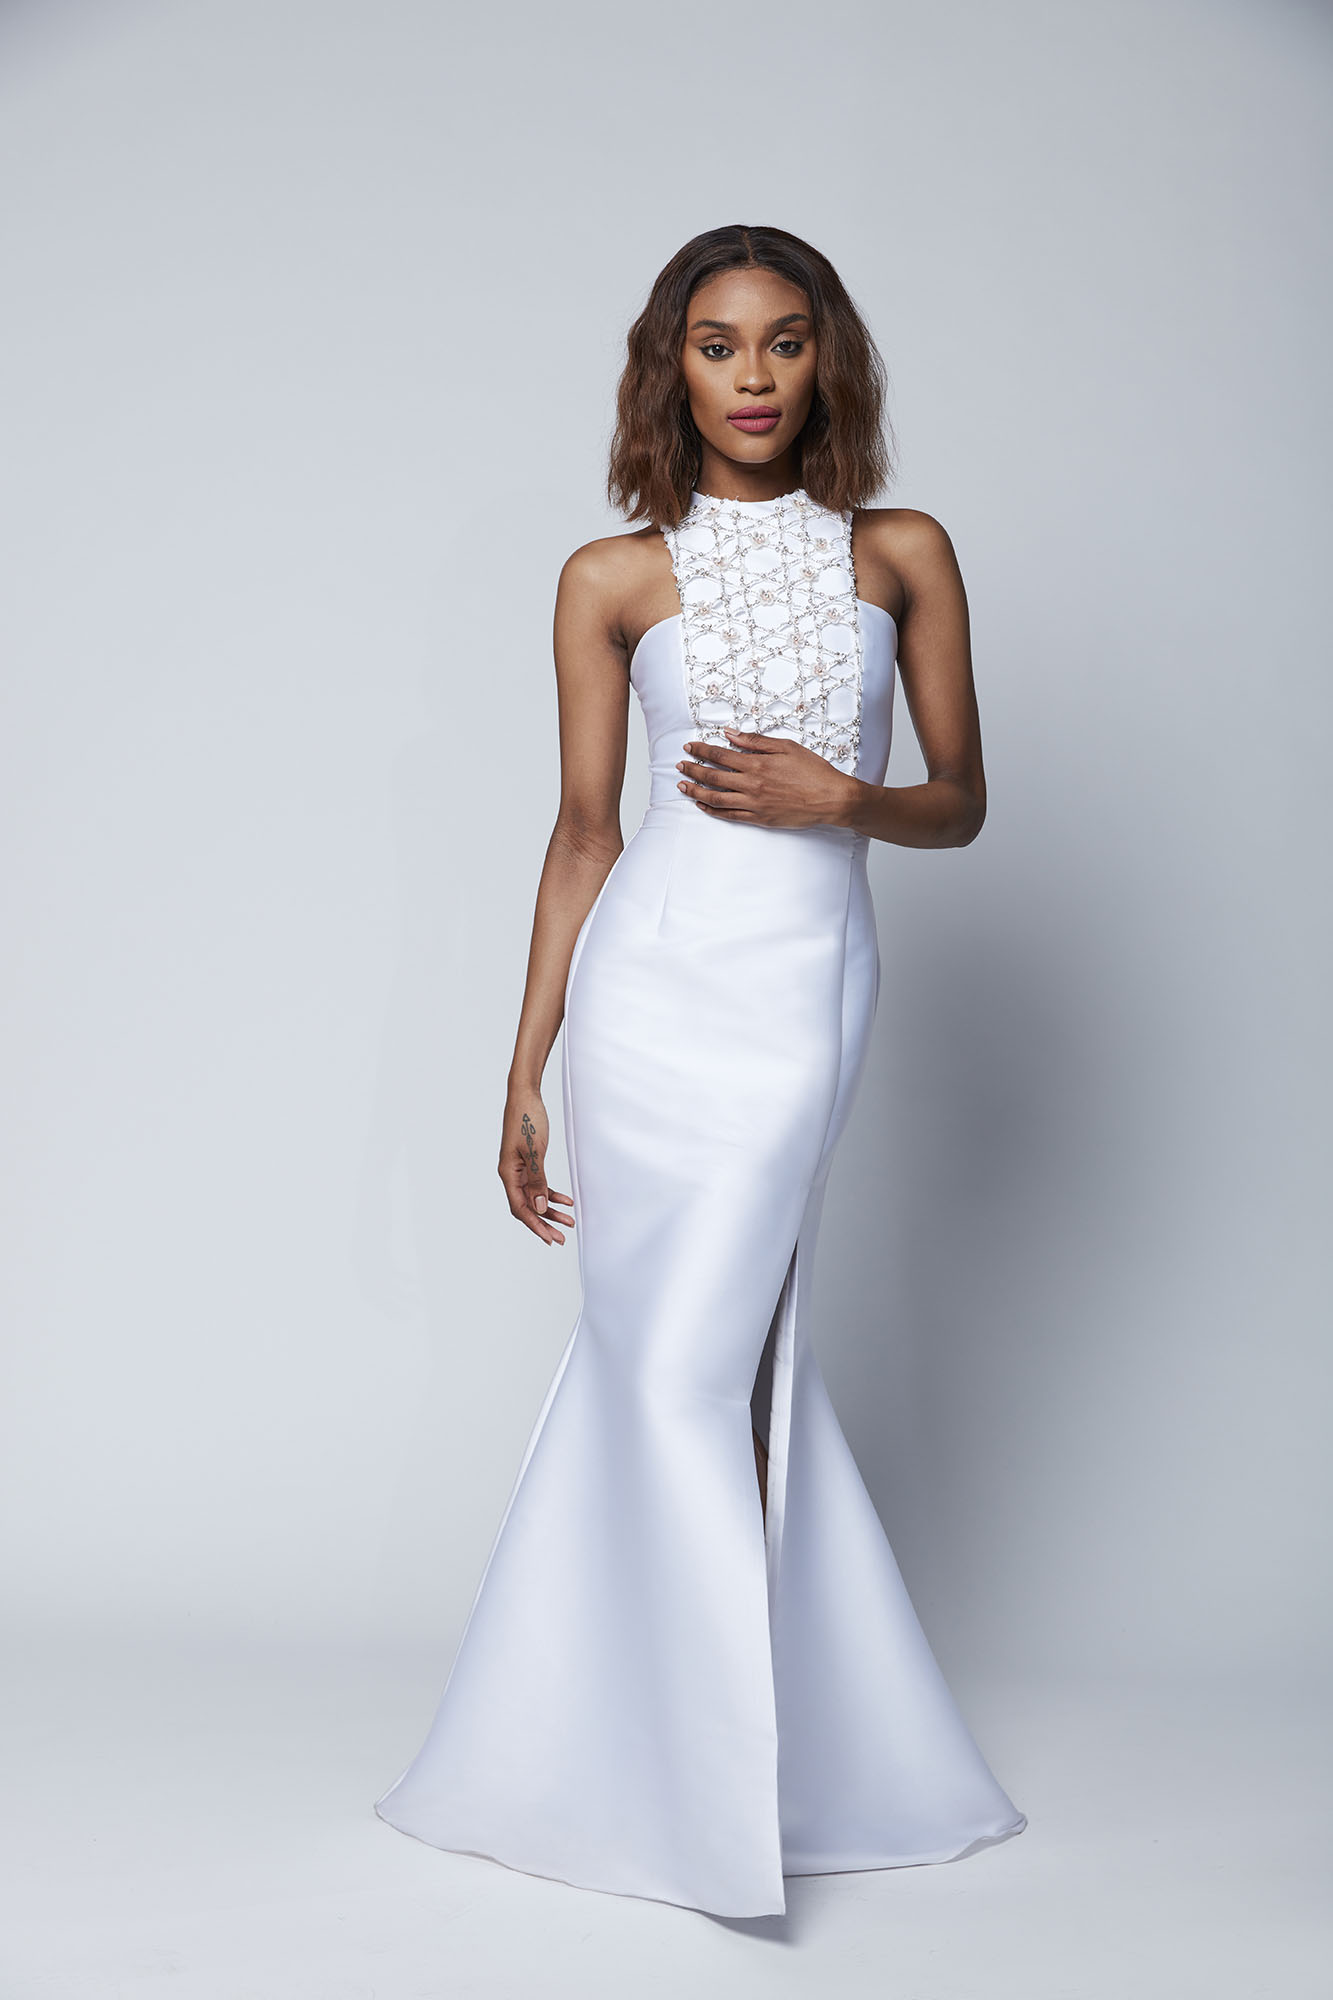 Paired with our angled Tara skirt, the hand embroidered Bronwen top has texture, a hint of color and just the right amount of sparkle for the fashion forward bride.